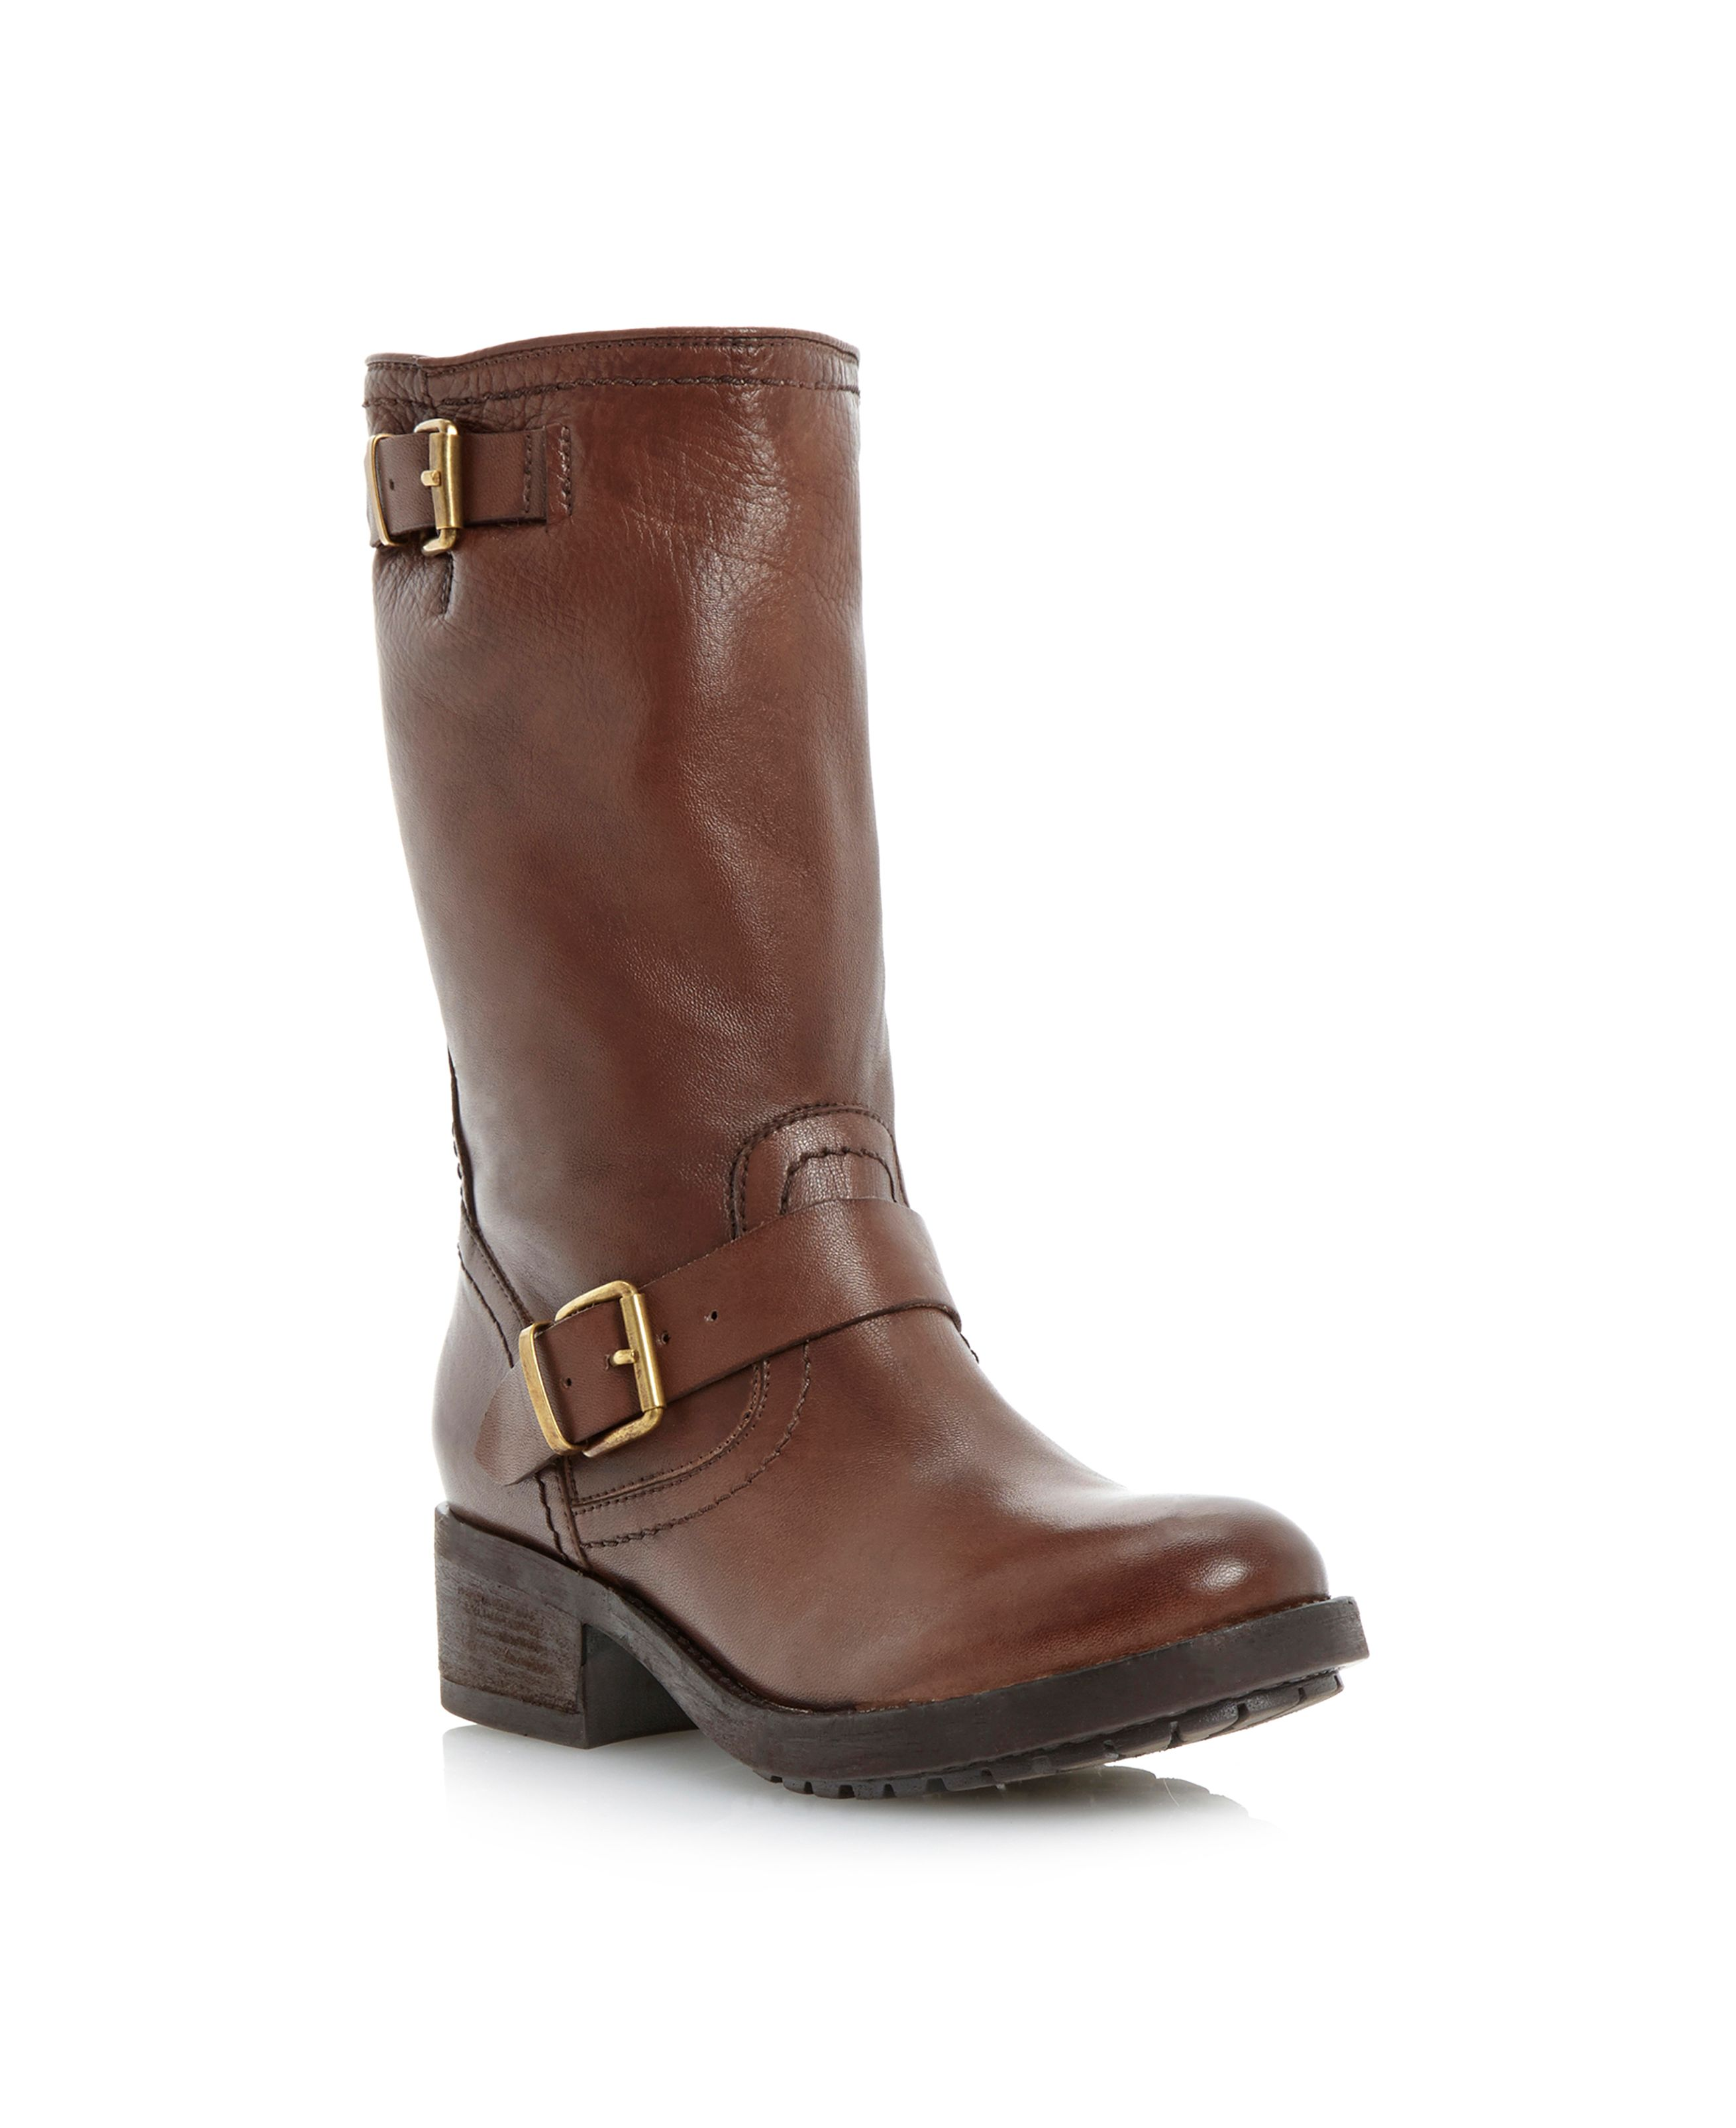 Rosamund cleated sole biker boots